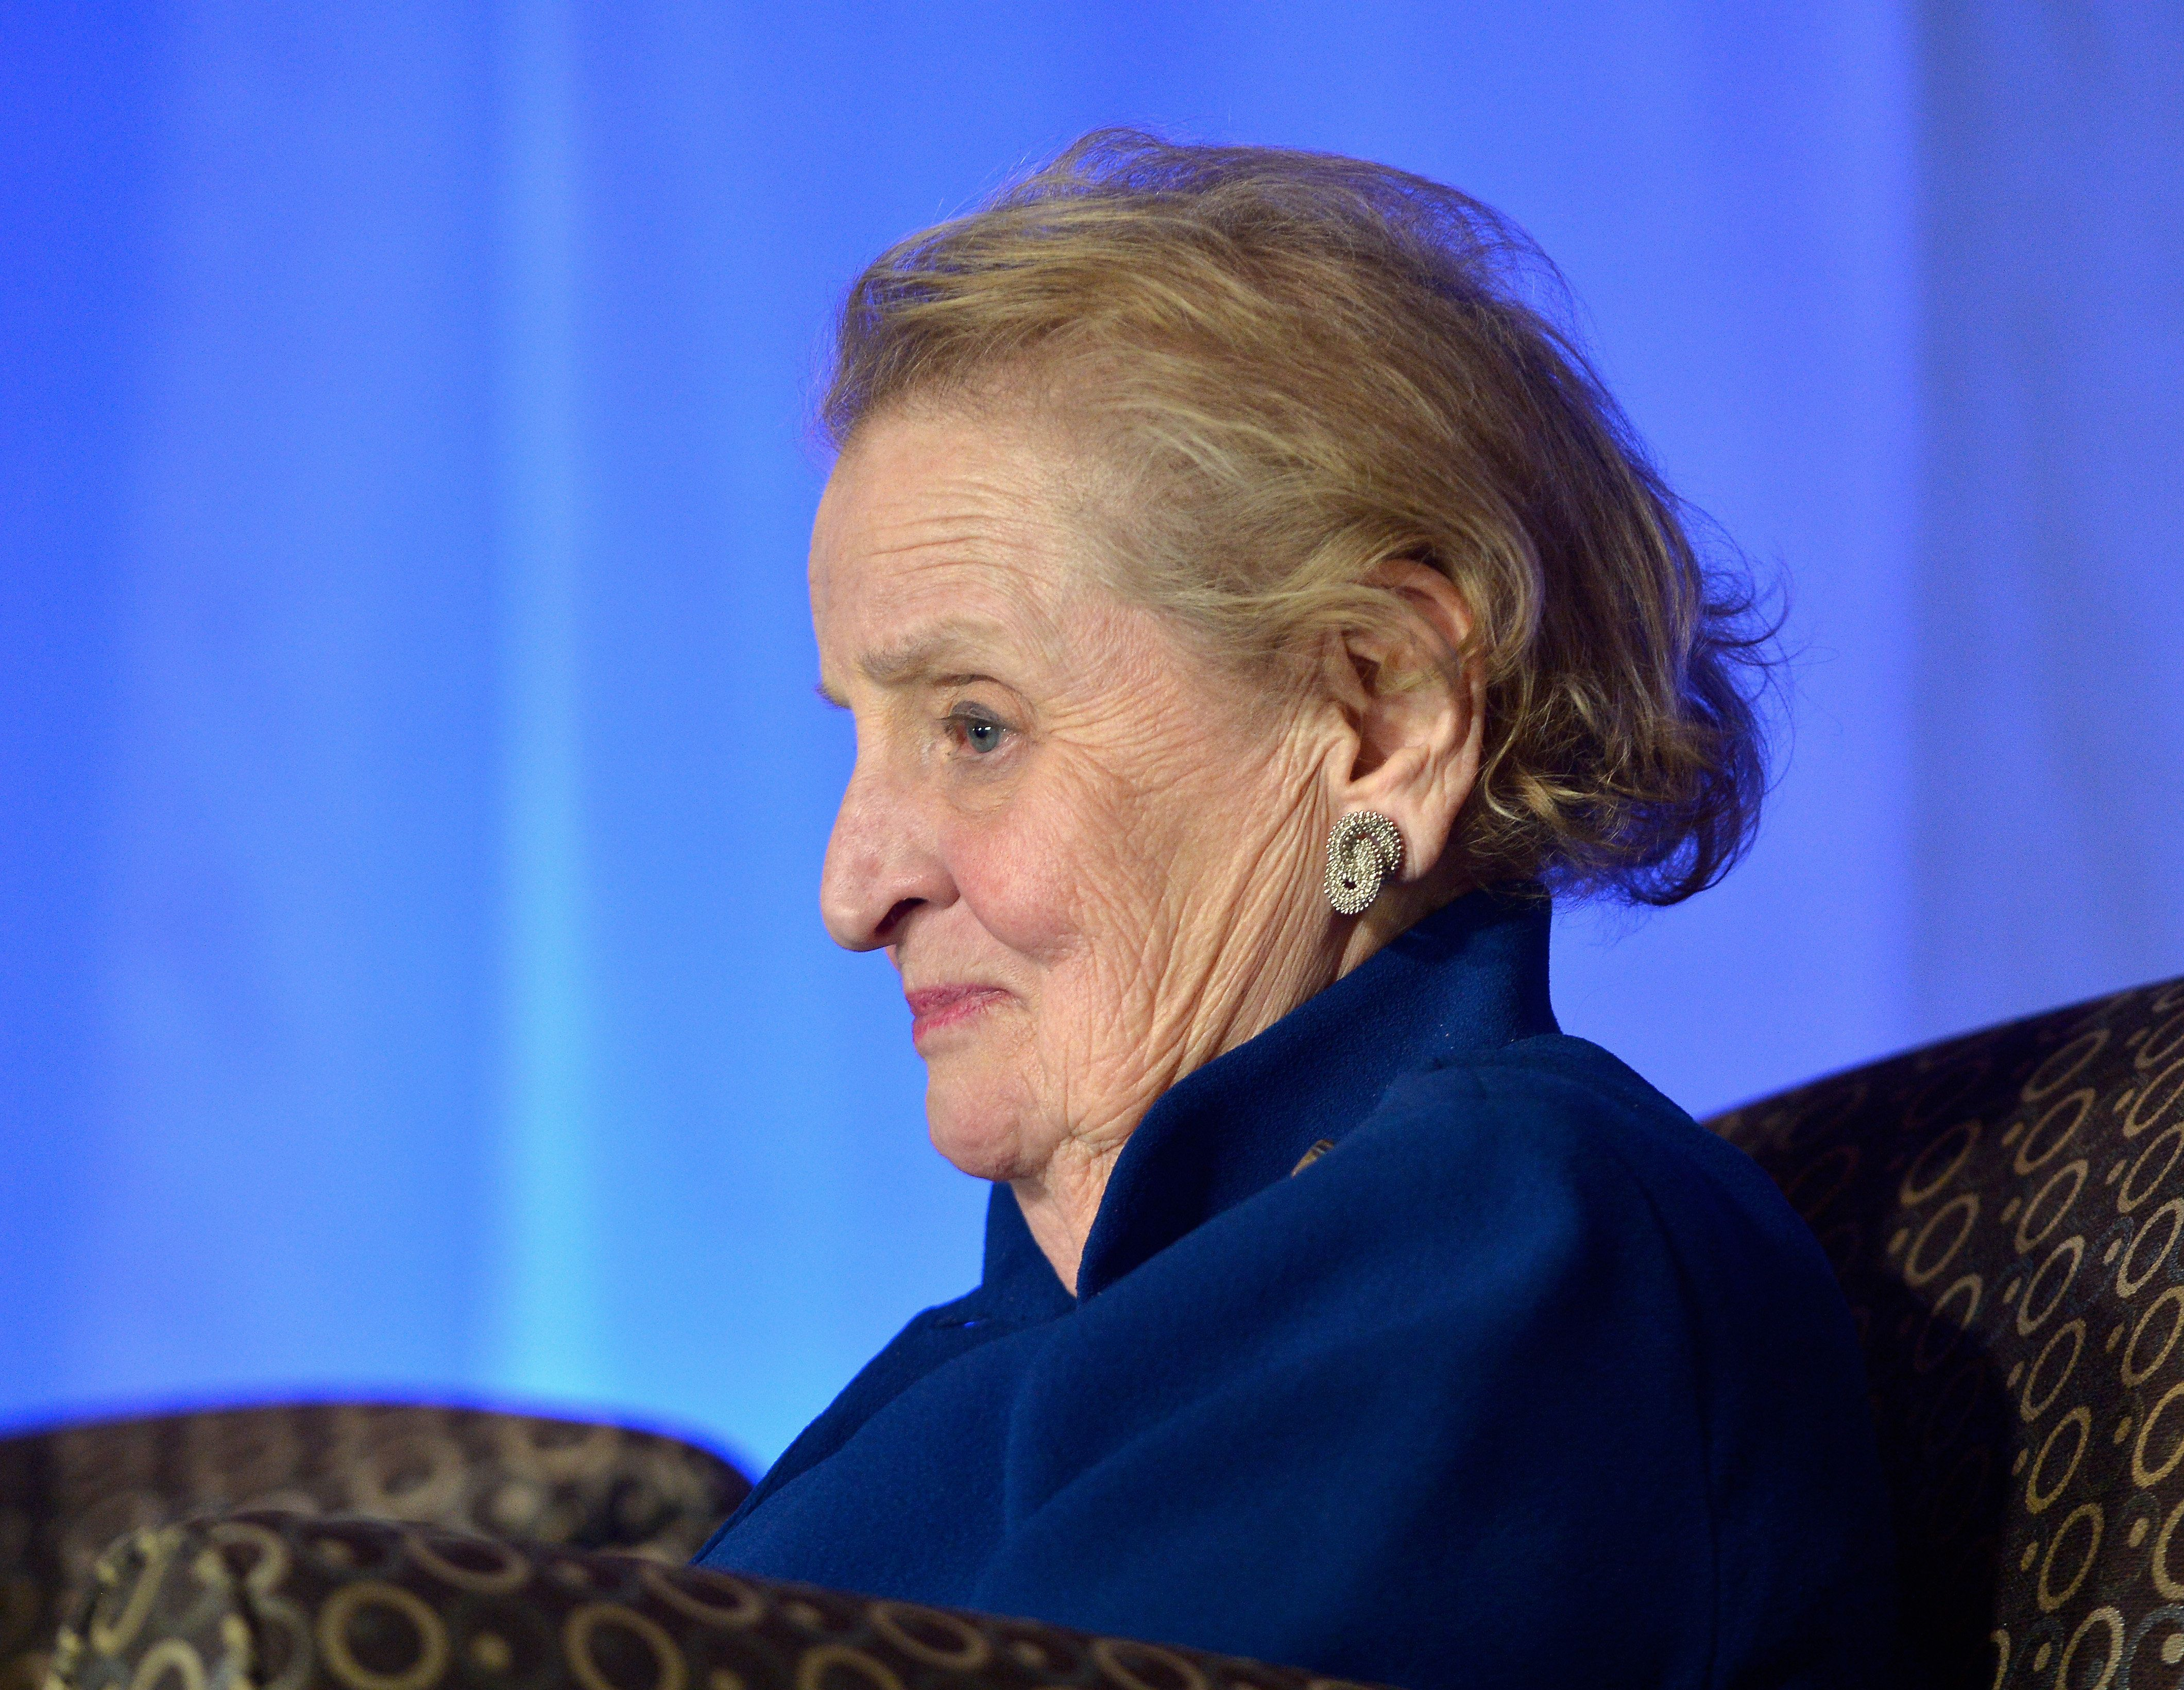 Pictures of madeleine albright Wayne LaPierre House Pictures - m